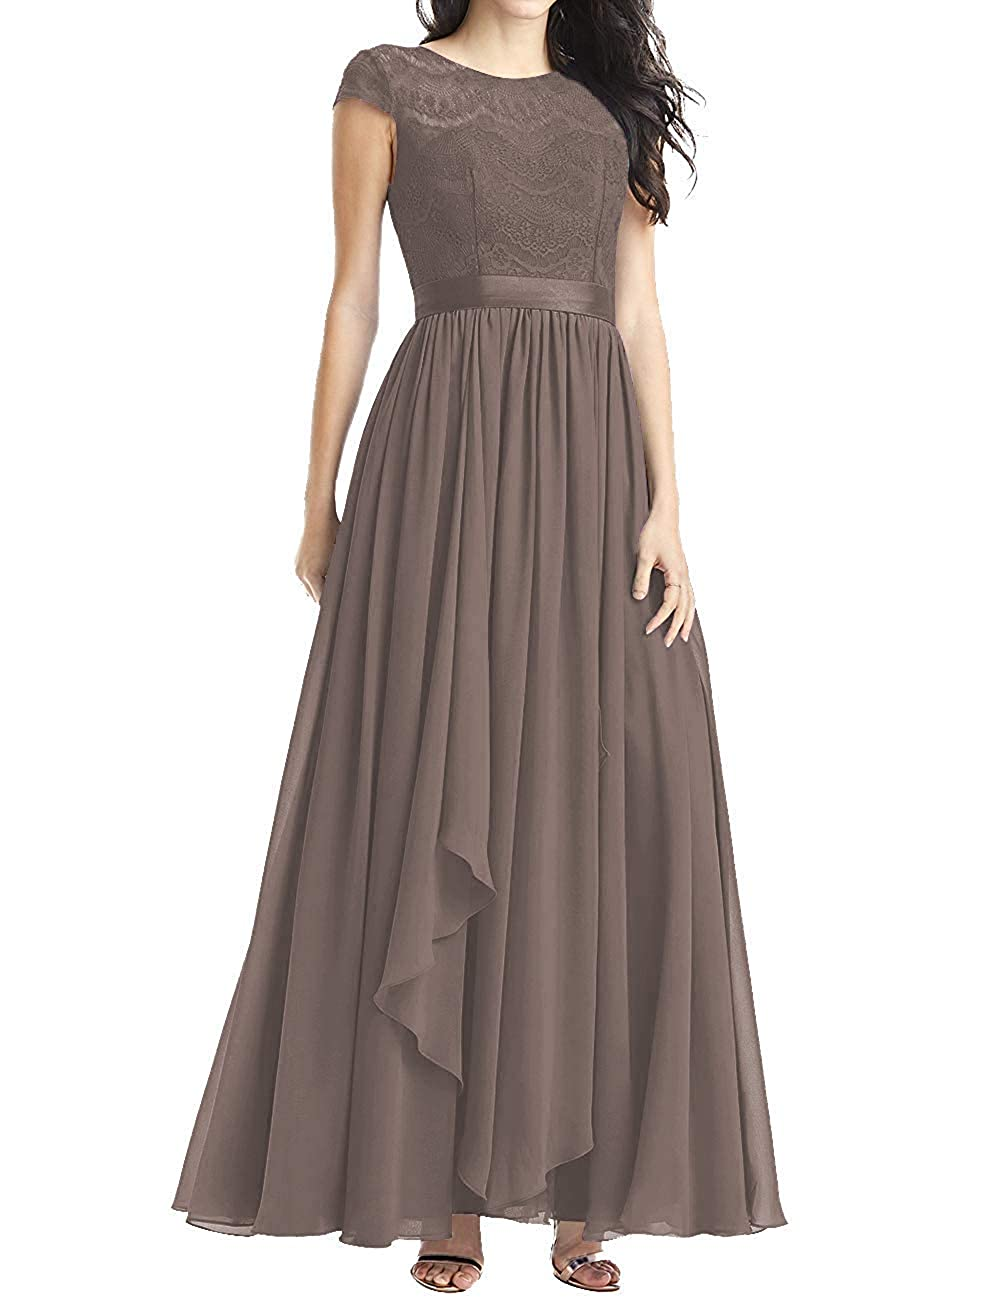 Brown Mother of The Bride Dresses Plus Size Evening Dresses with Sleeves Formal Gowns for Women Evening Dress